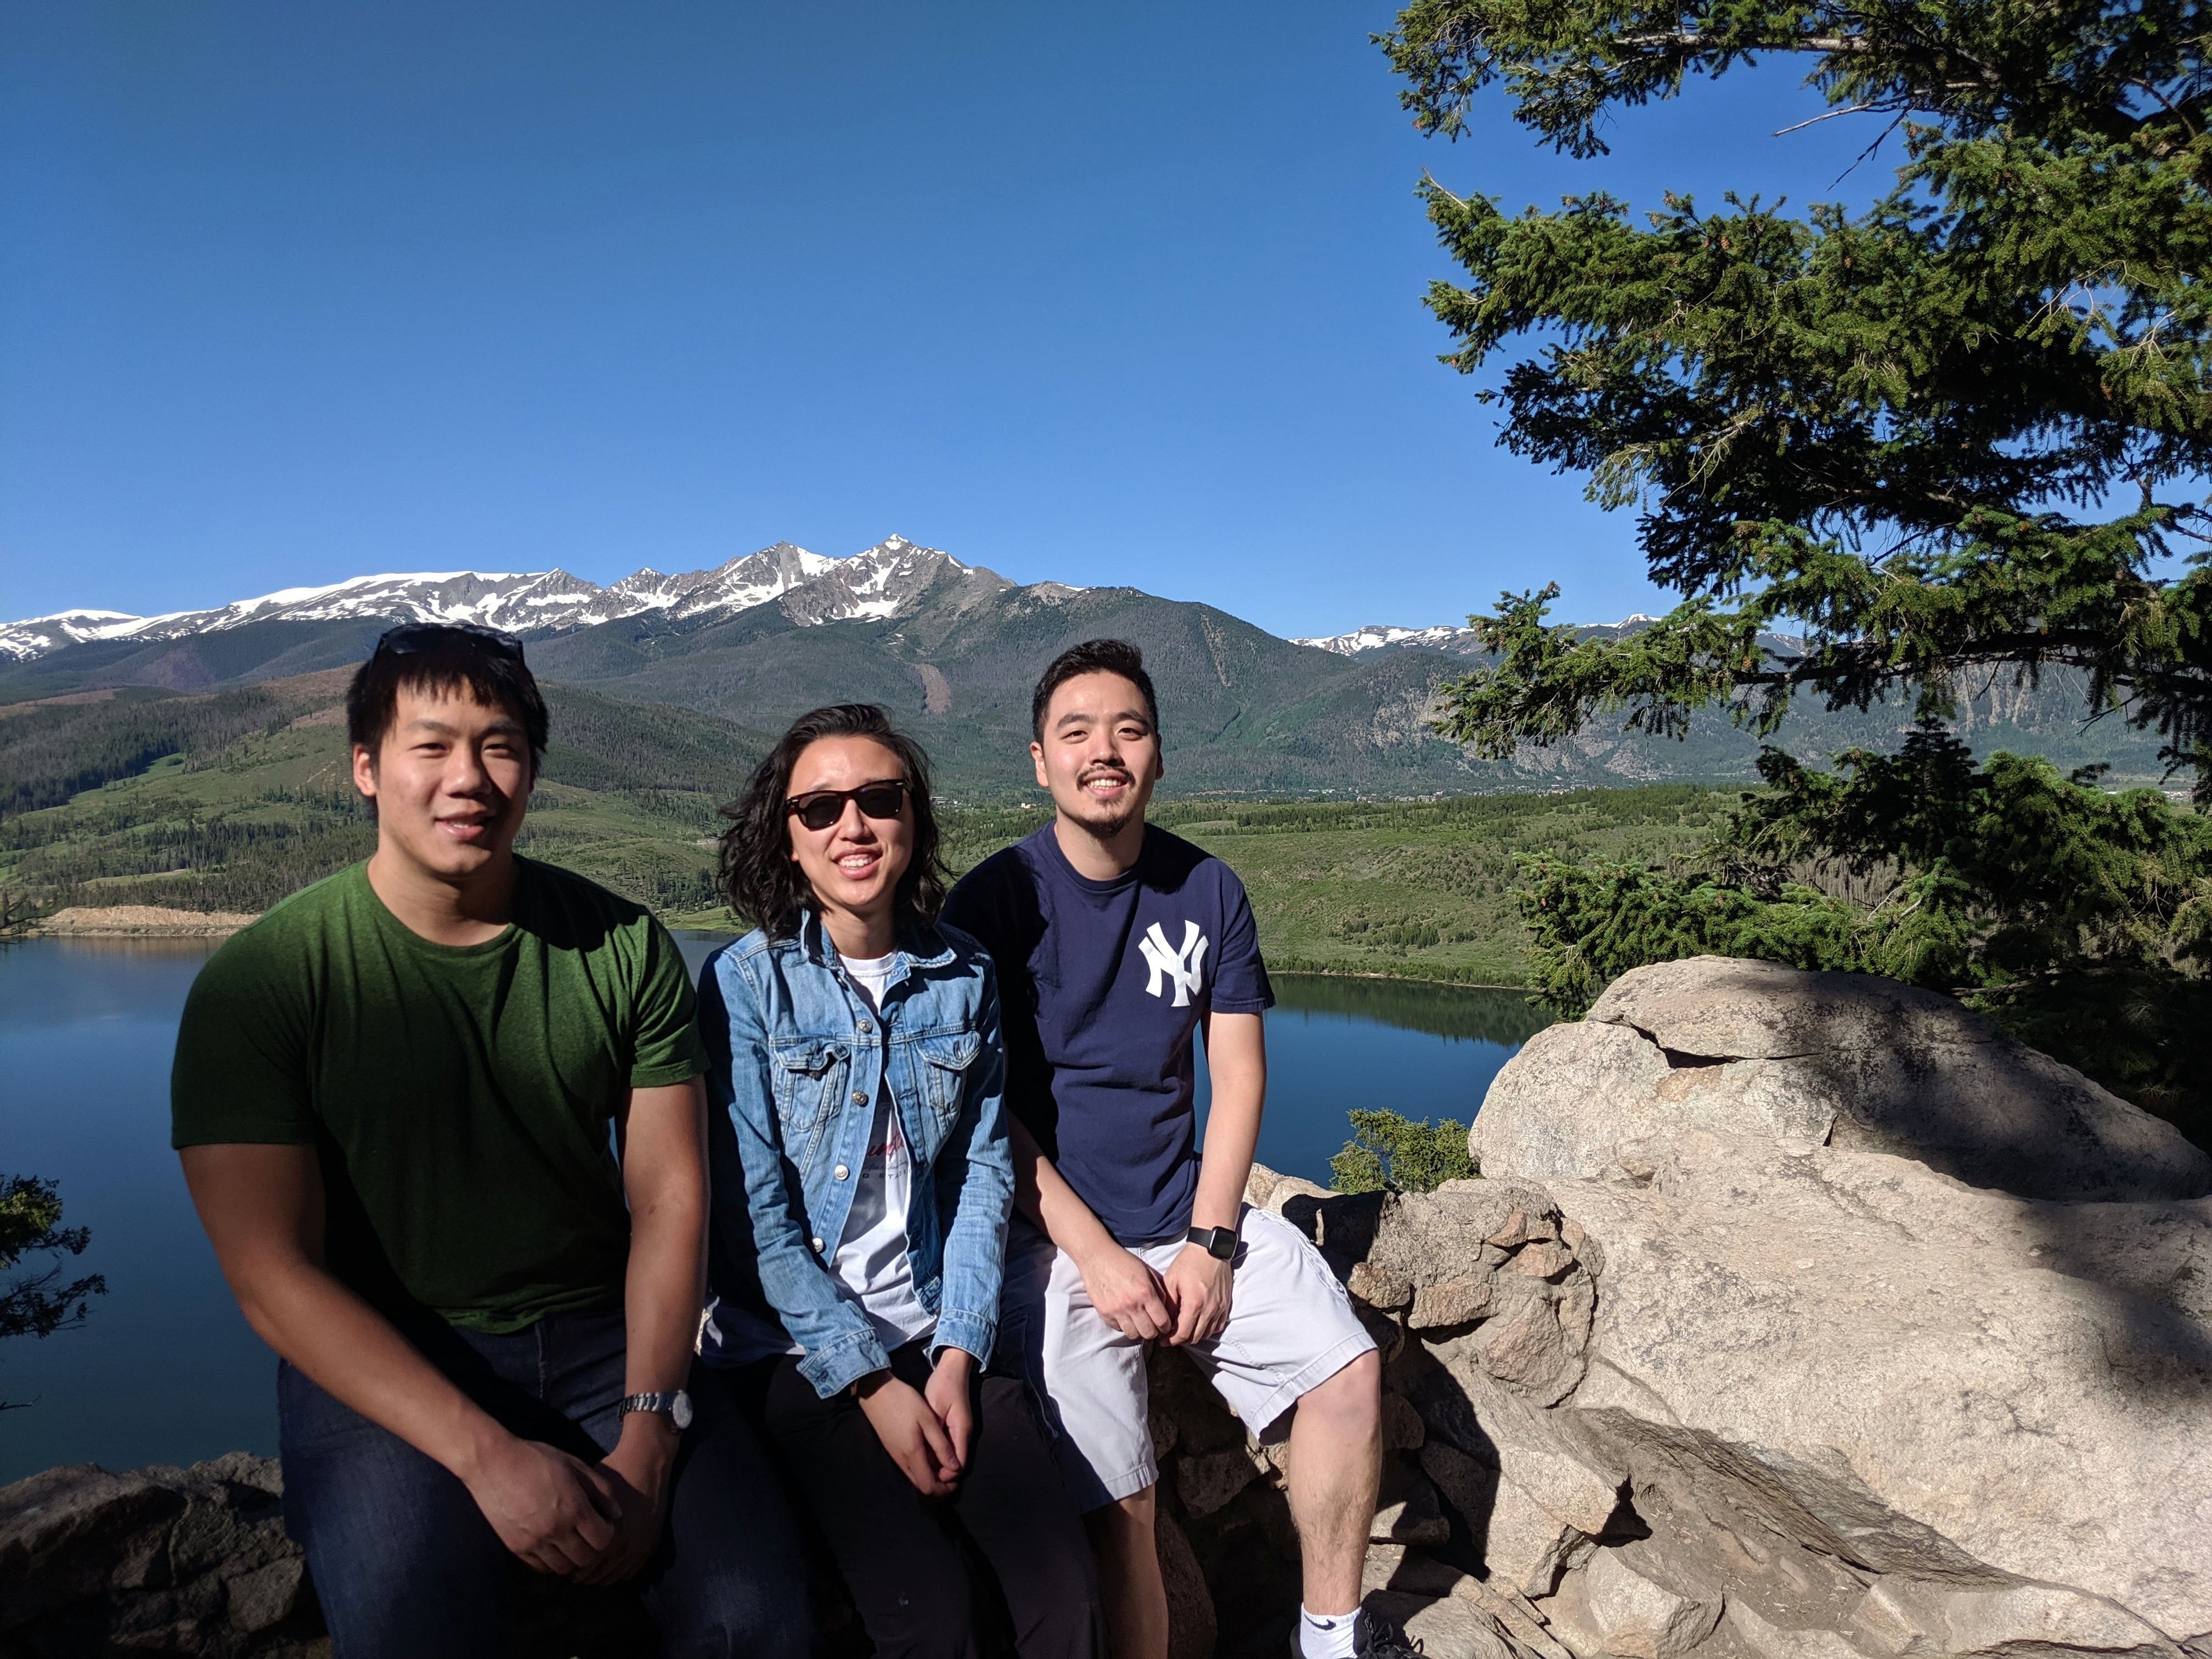 MD/PhD Students enjoying the CO outdoors